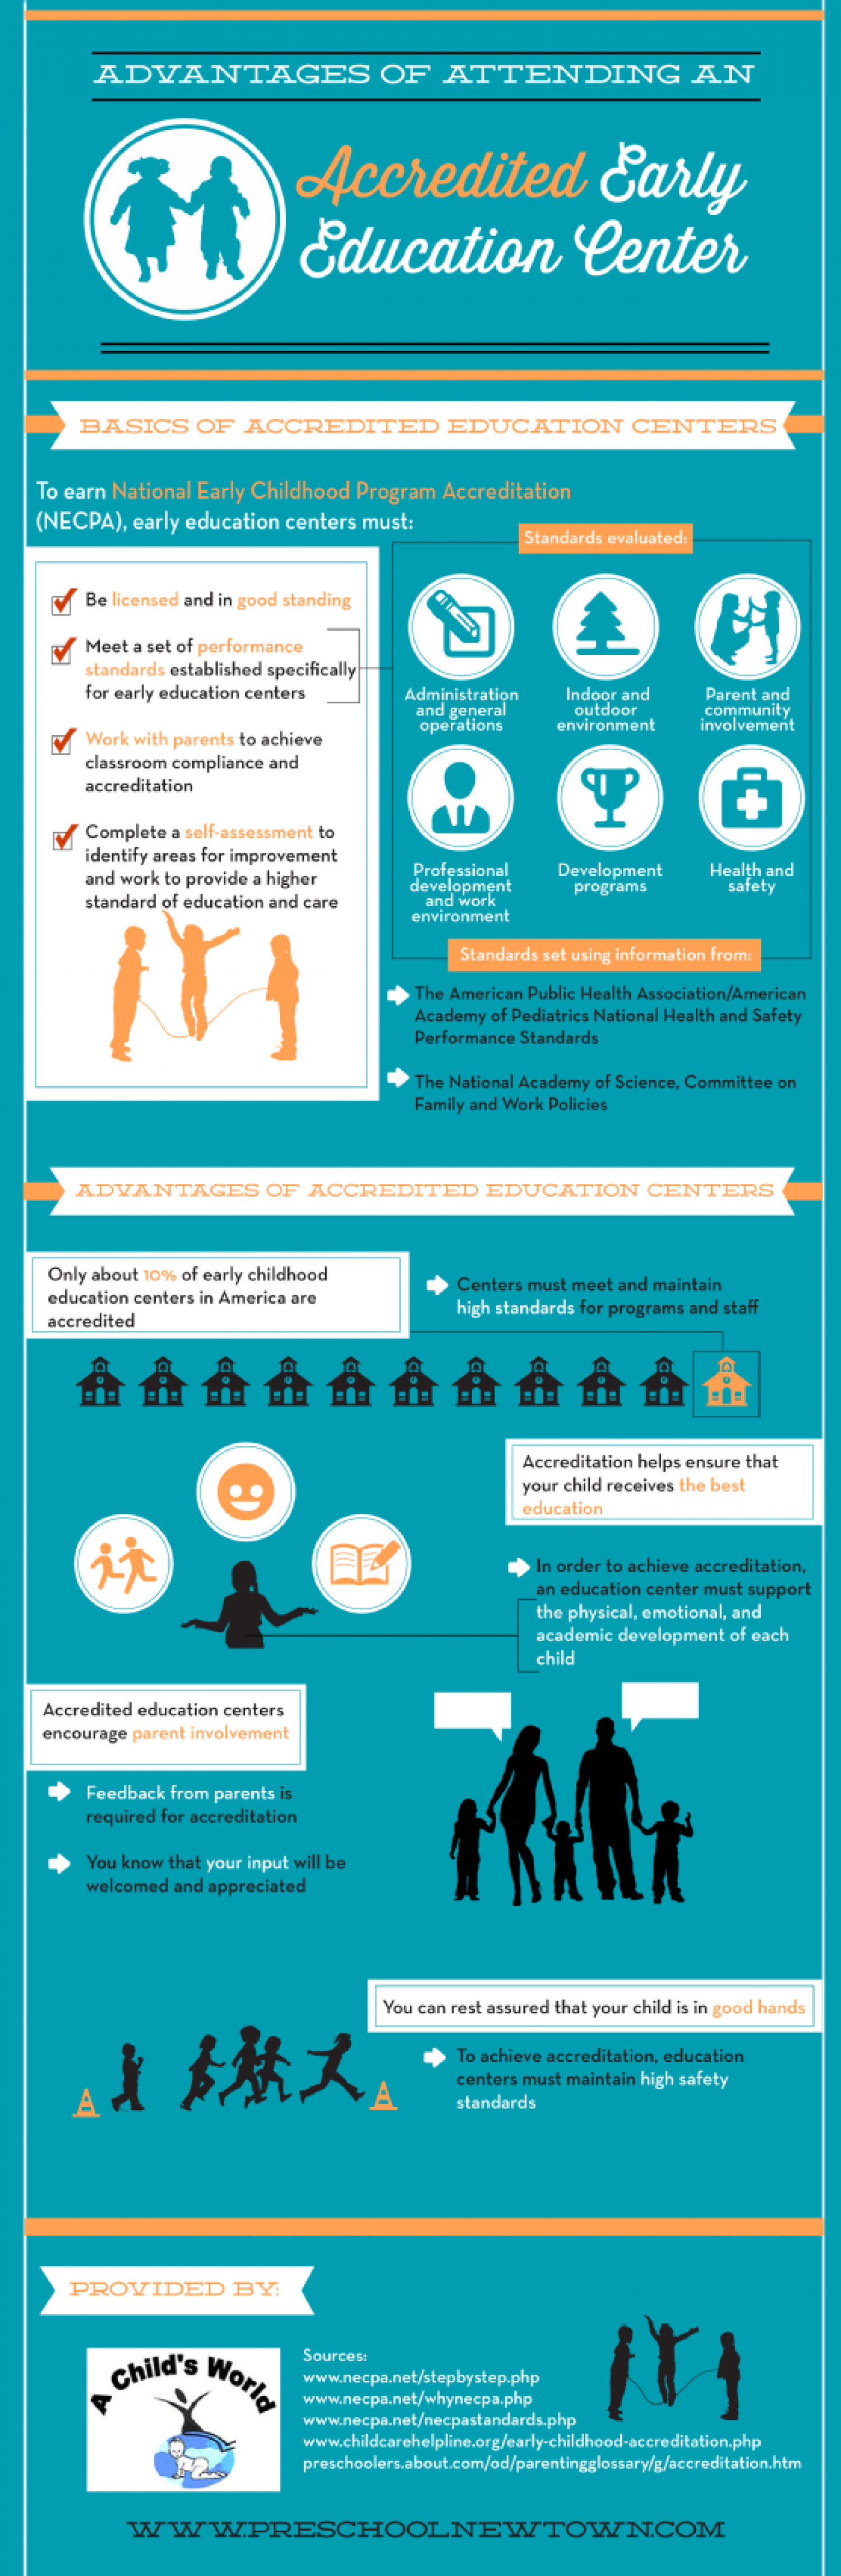 Advantages of Attending an Accredited Early Education Center Infographic